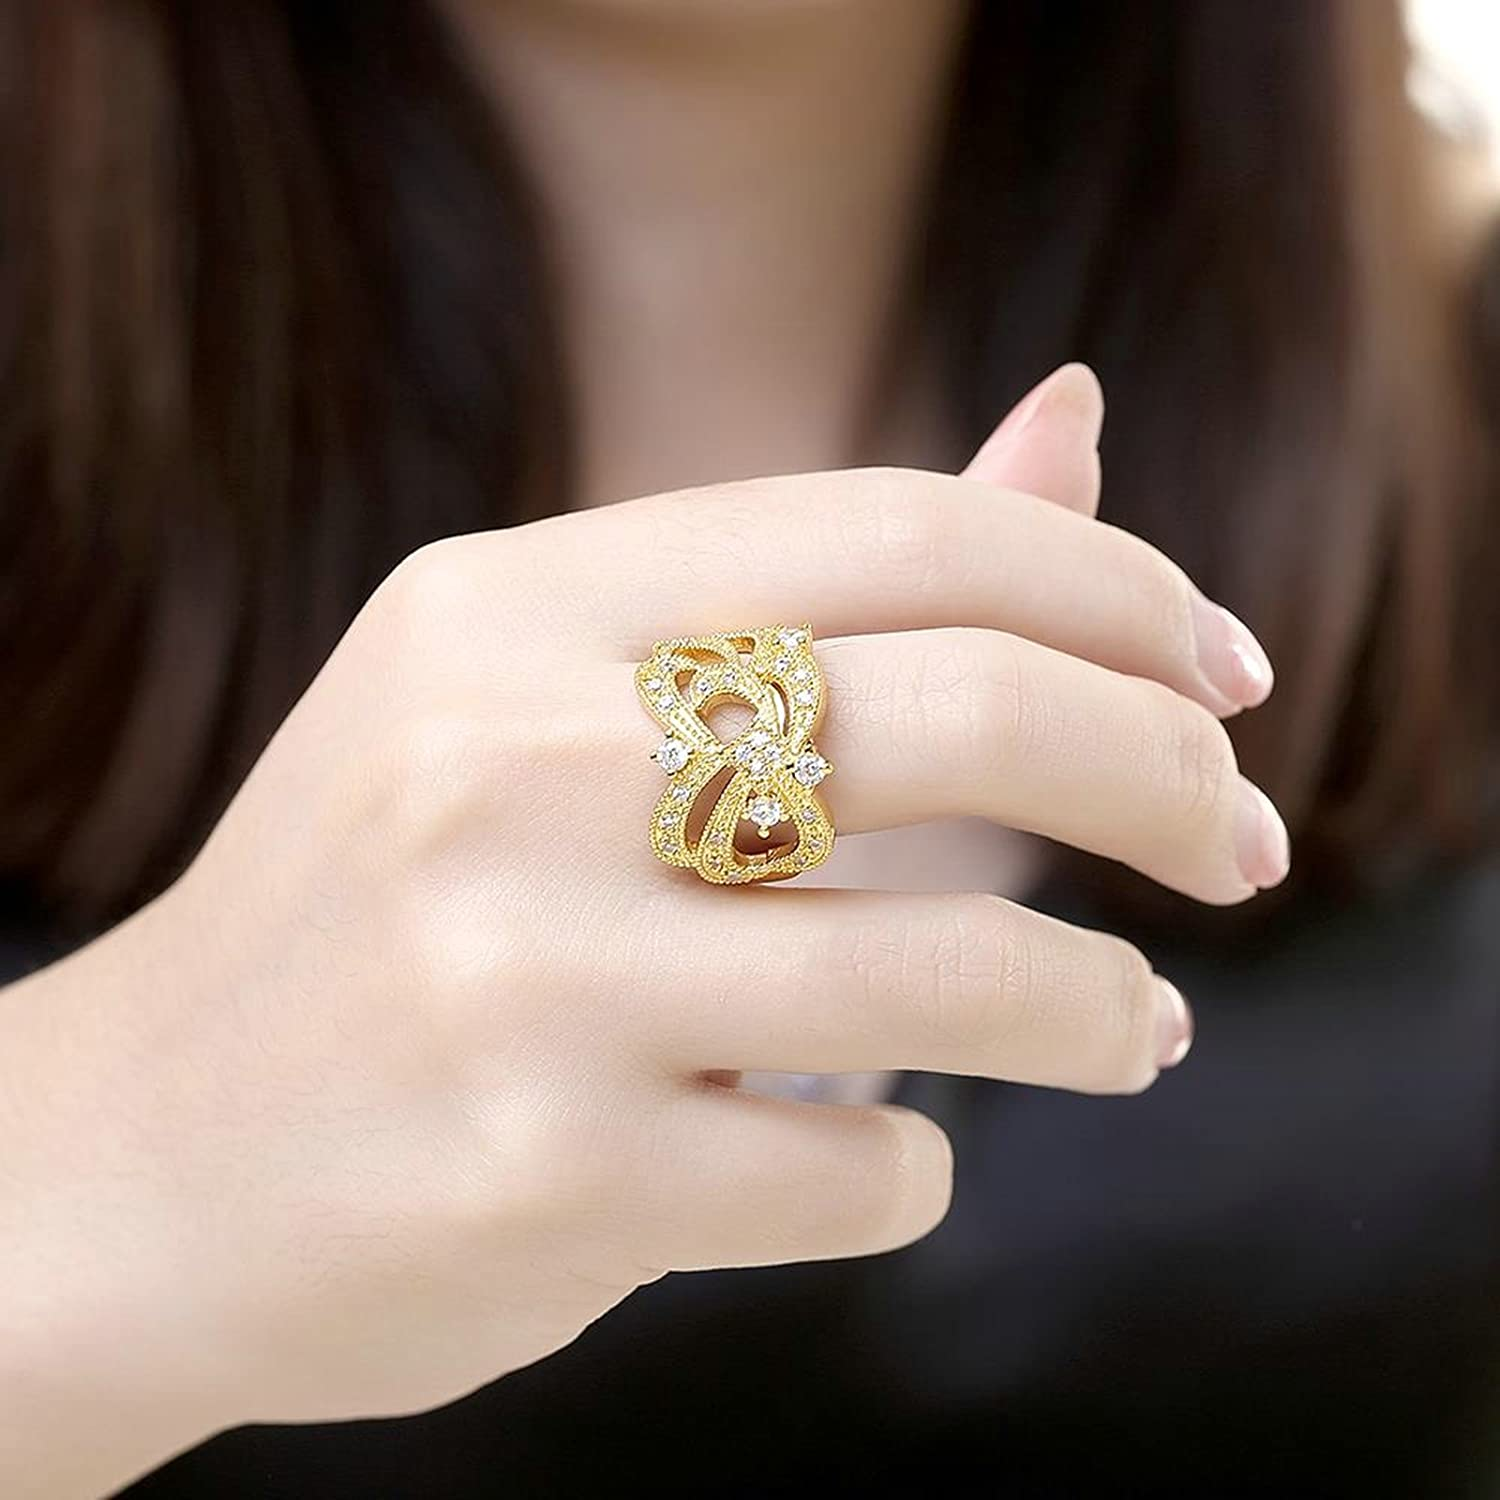 Gnzoe Jewelry 18K Gold Plated Women Rings Design Geometry Size 8